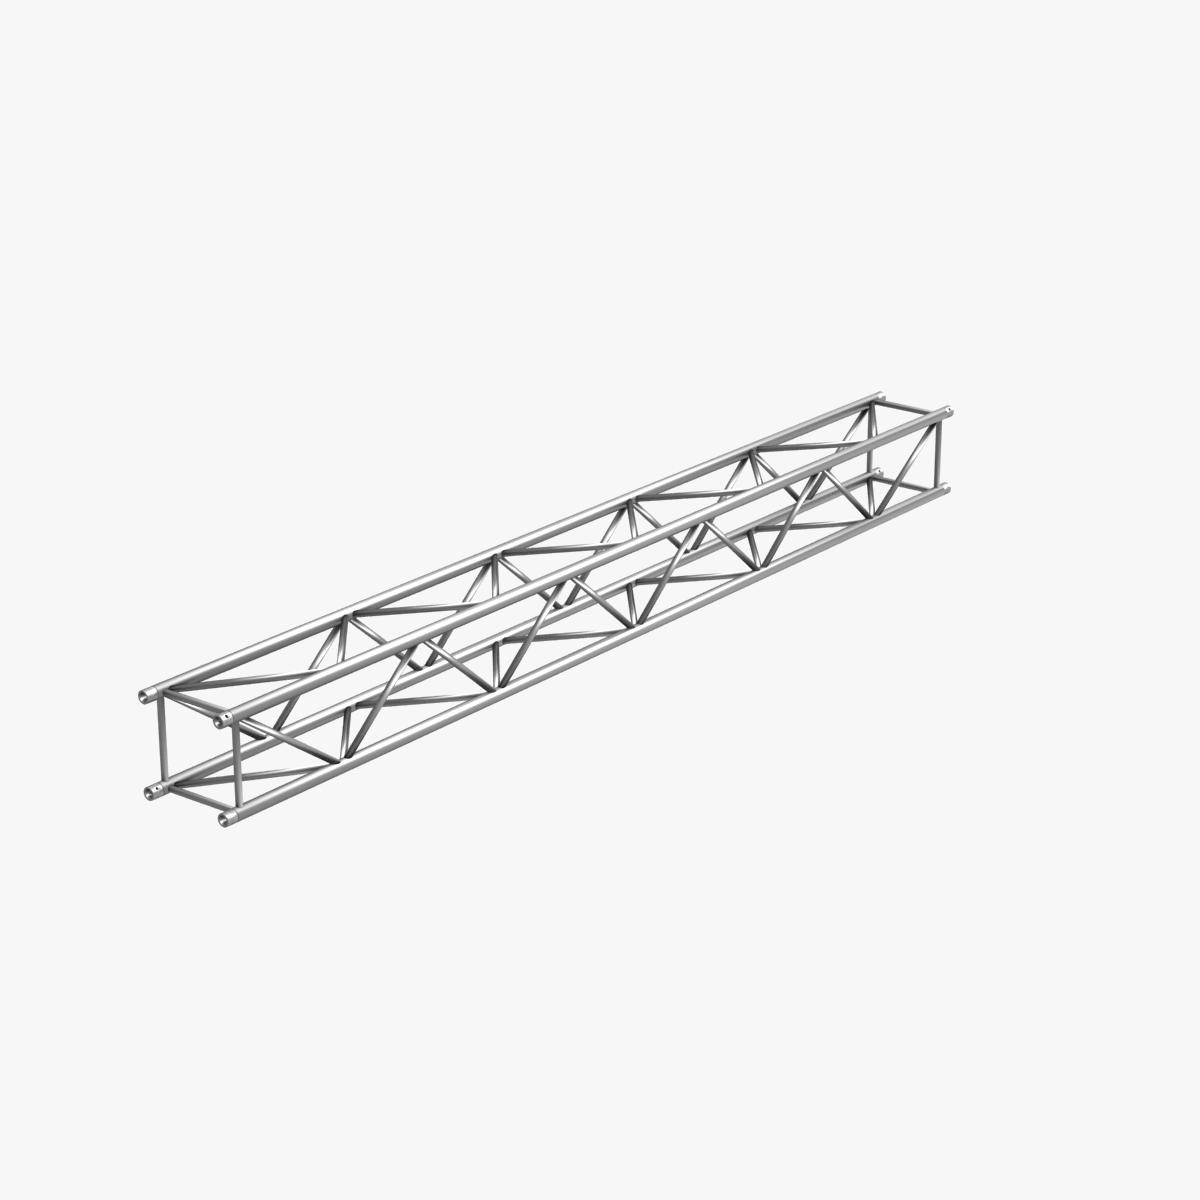 big square truss (collection 10 modular pieces) 3d model 3ds dxf fbx c4d dae  268558